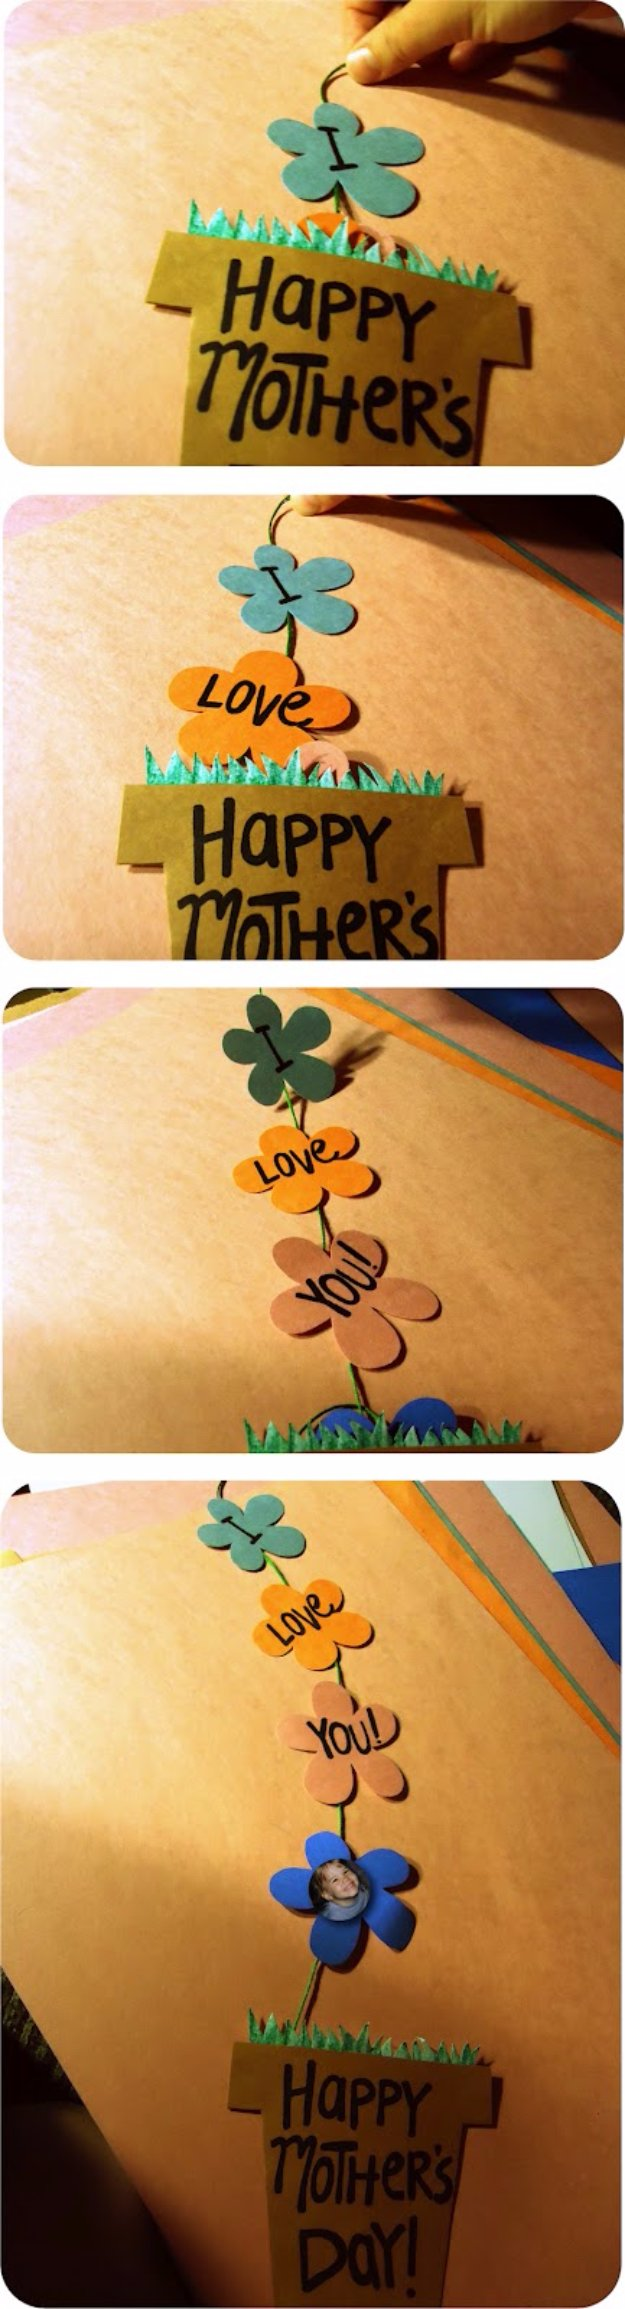 DIY Mothers Day Cards - DIY Mother's Day flower Pot Card - Creative and Thoughtful Homemade Card Ideas for Mom - Step by Step Tutorials, Best Quotes, Handmade Projects